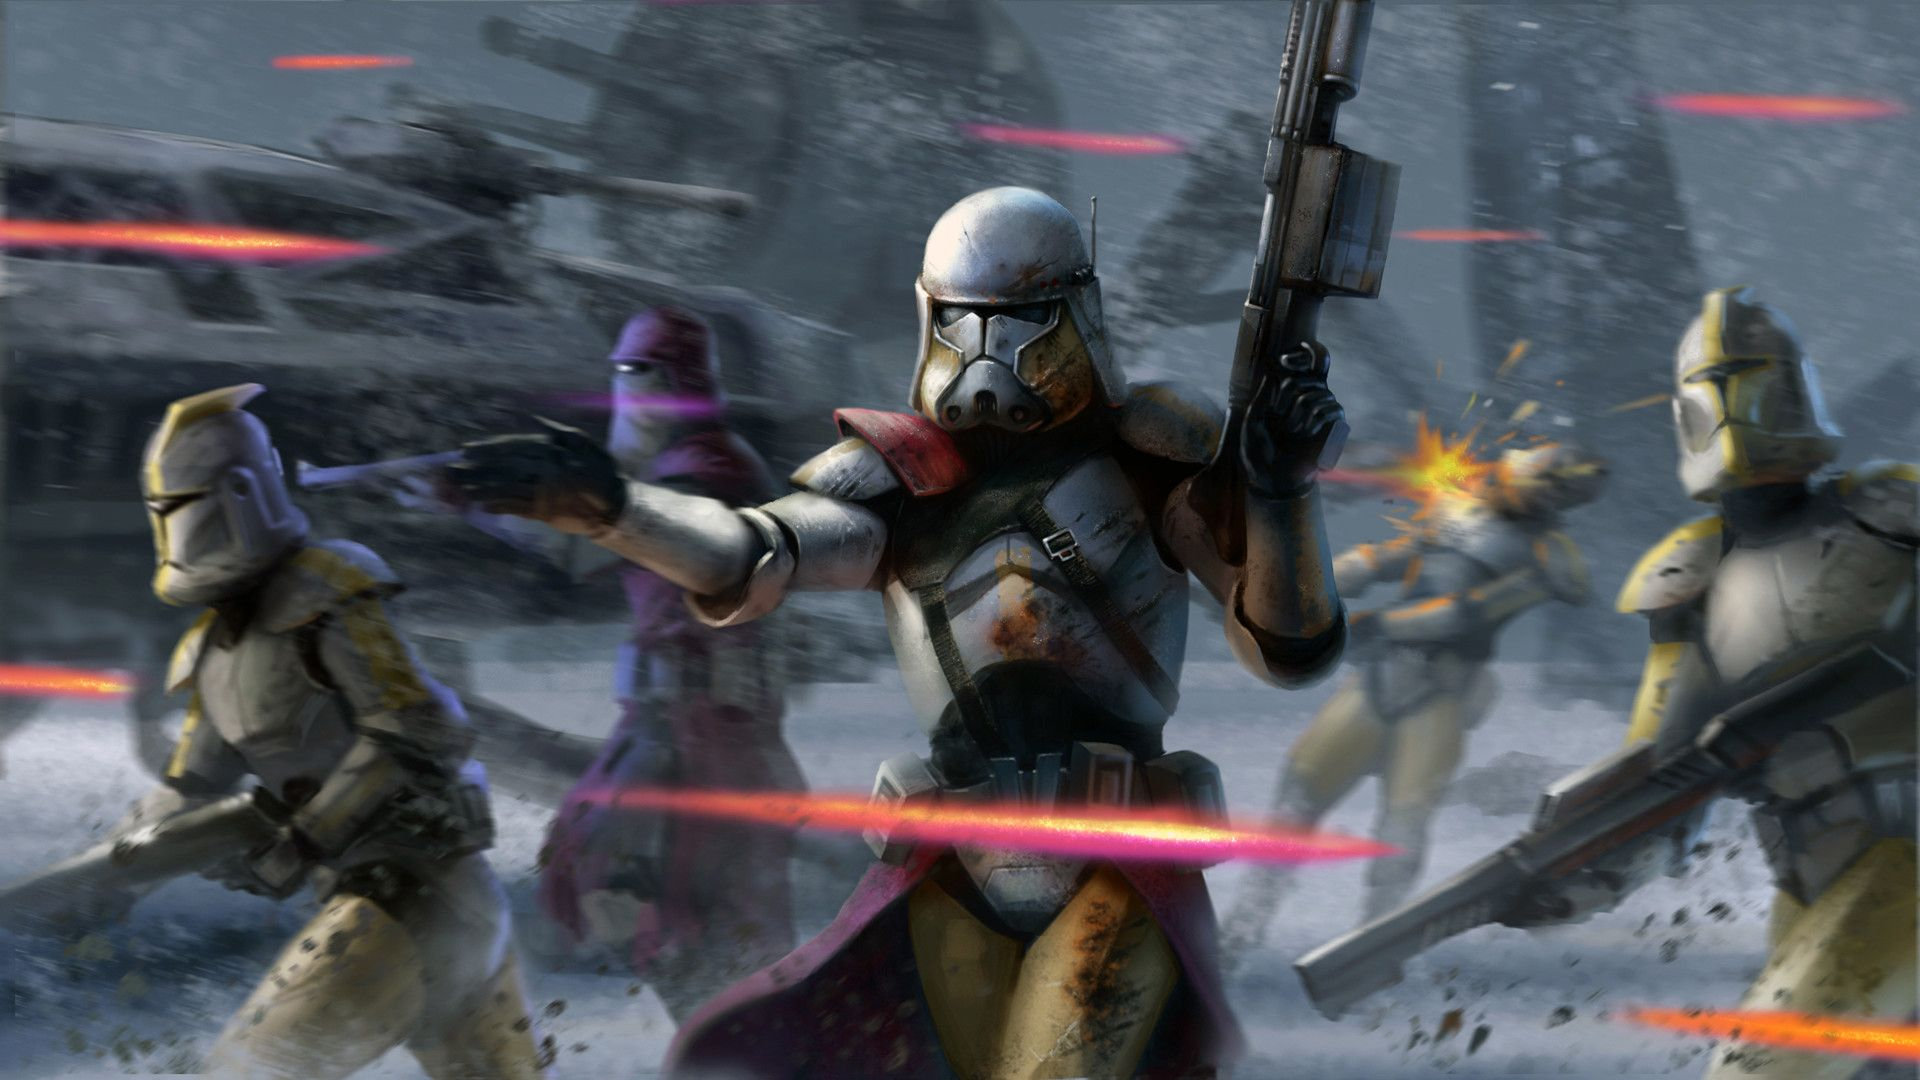 Clone Wars Wallpapers Top Free Clone Wars Backgrounds